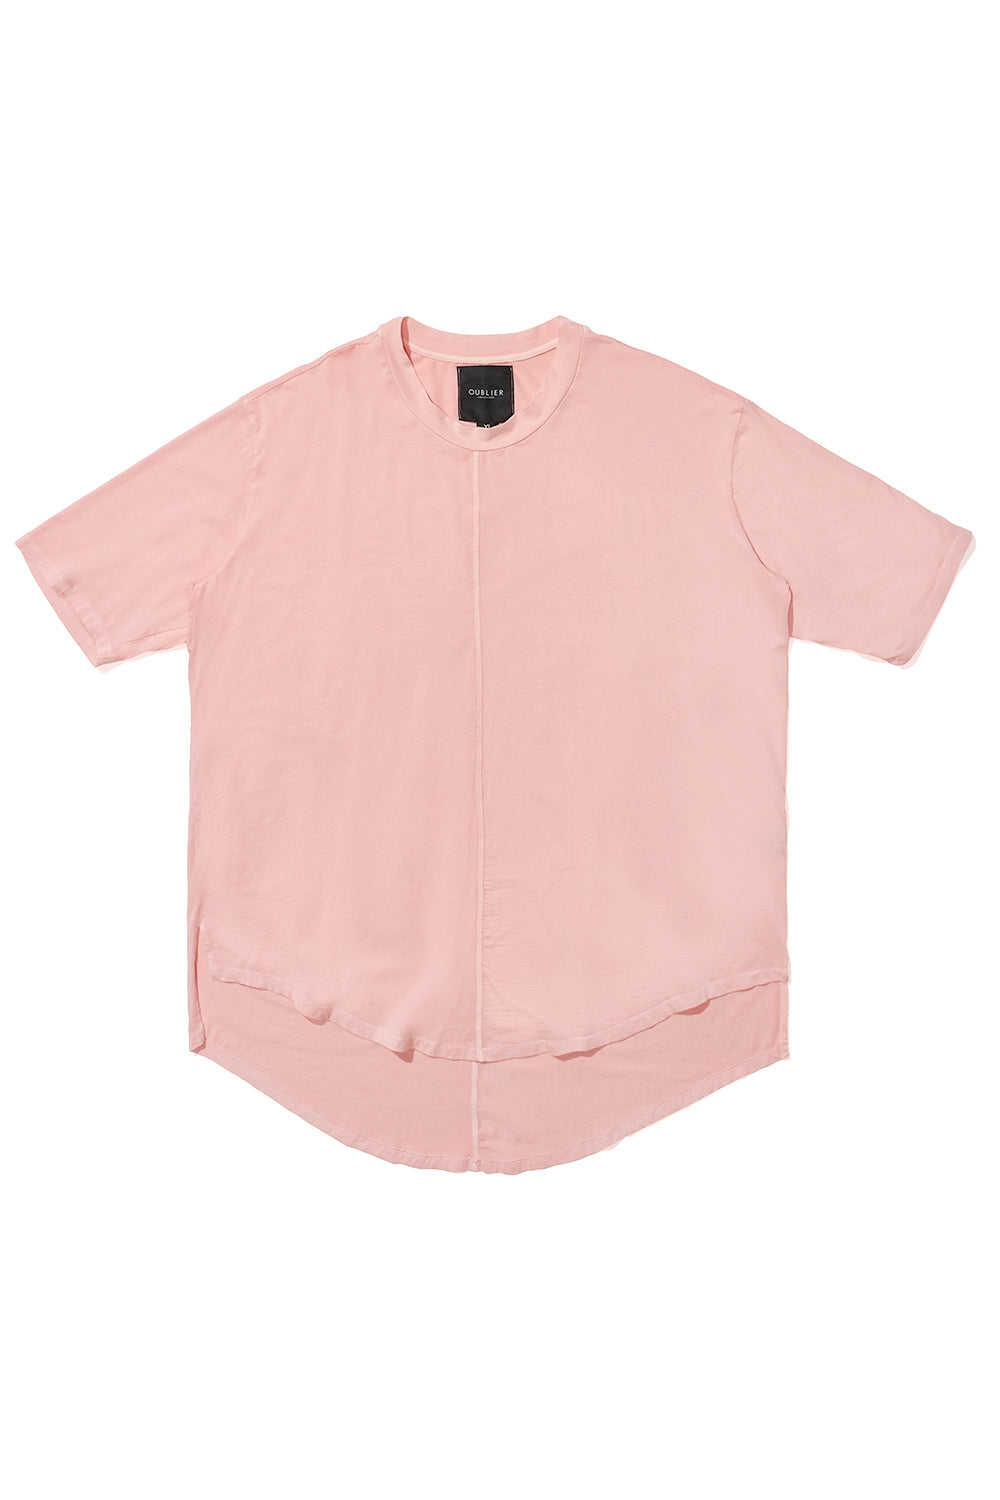 ROSÉ BILEVEL T-SHIRT